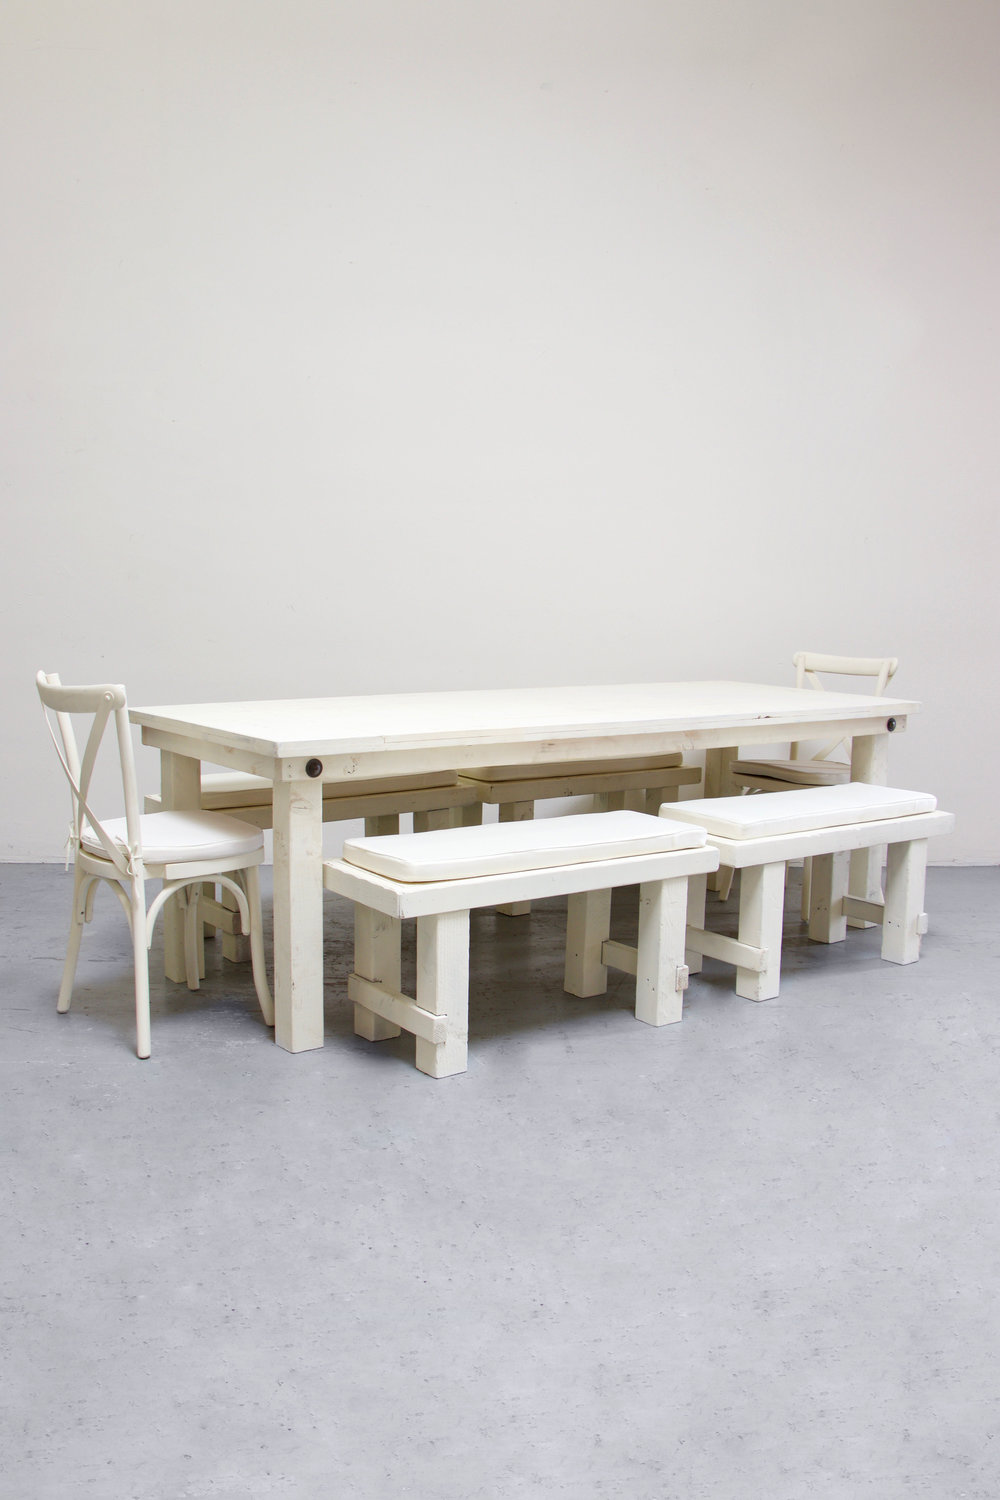 1 Vintage White Farm Table w/ 4 Short Benches & 2 Cross-Back Chairs $160